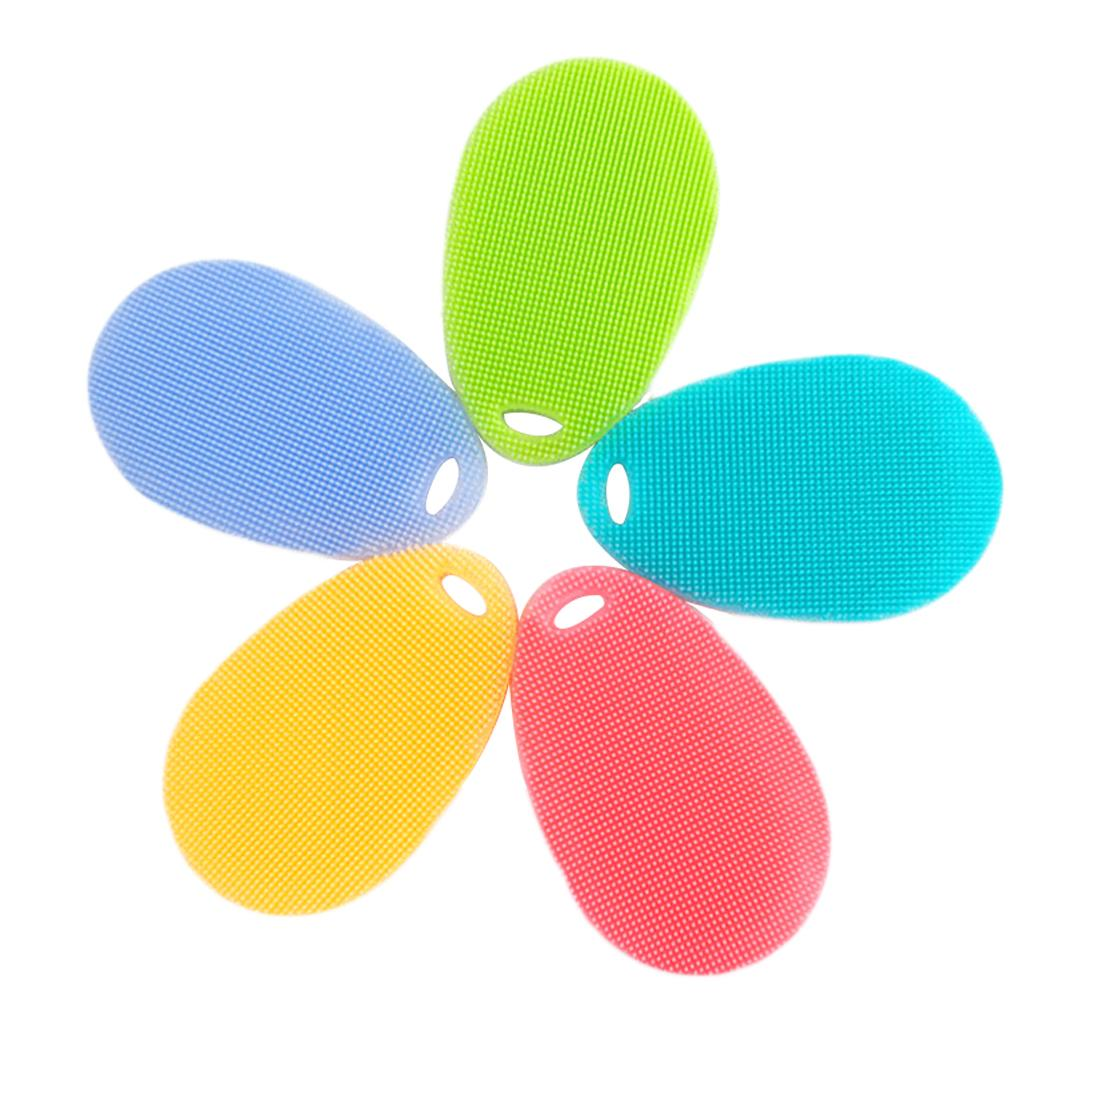 Hot Sale Silicone Brush Magic Dish Bowl Pot Pan Wash Cleaning Brushes Cooking Tool Cleaner Sponges Scouring Pads